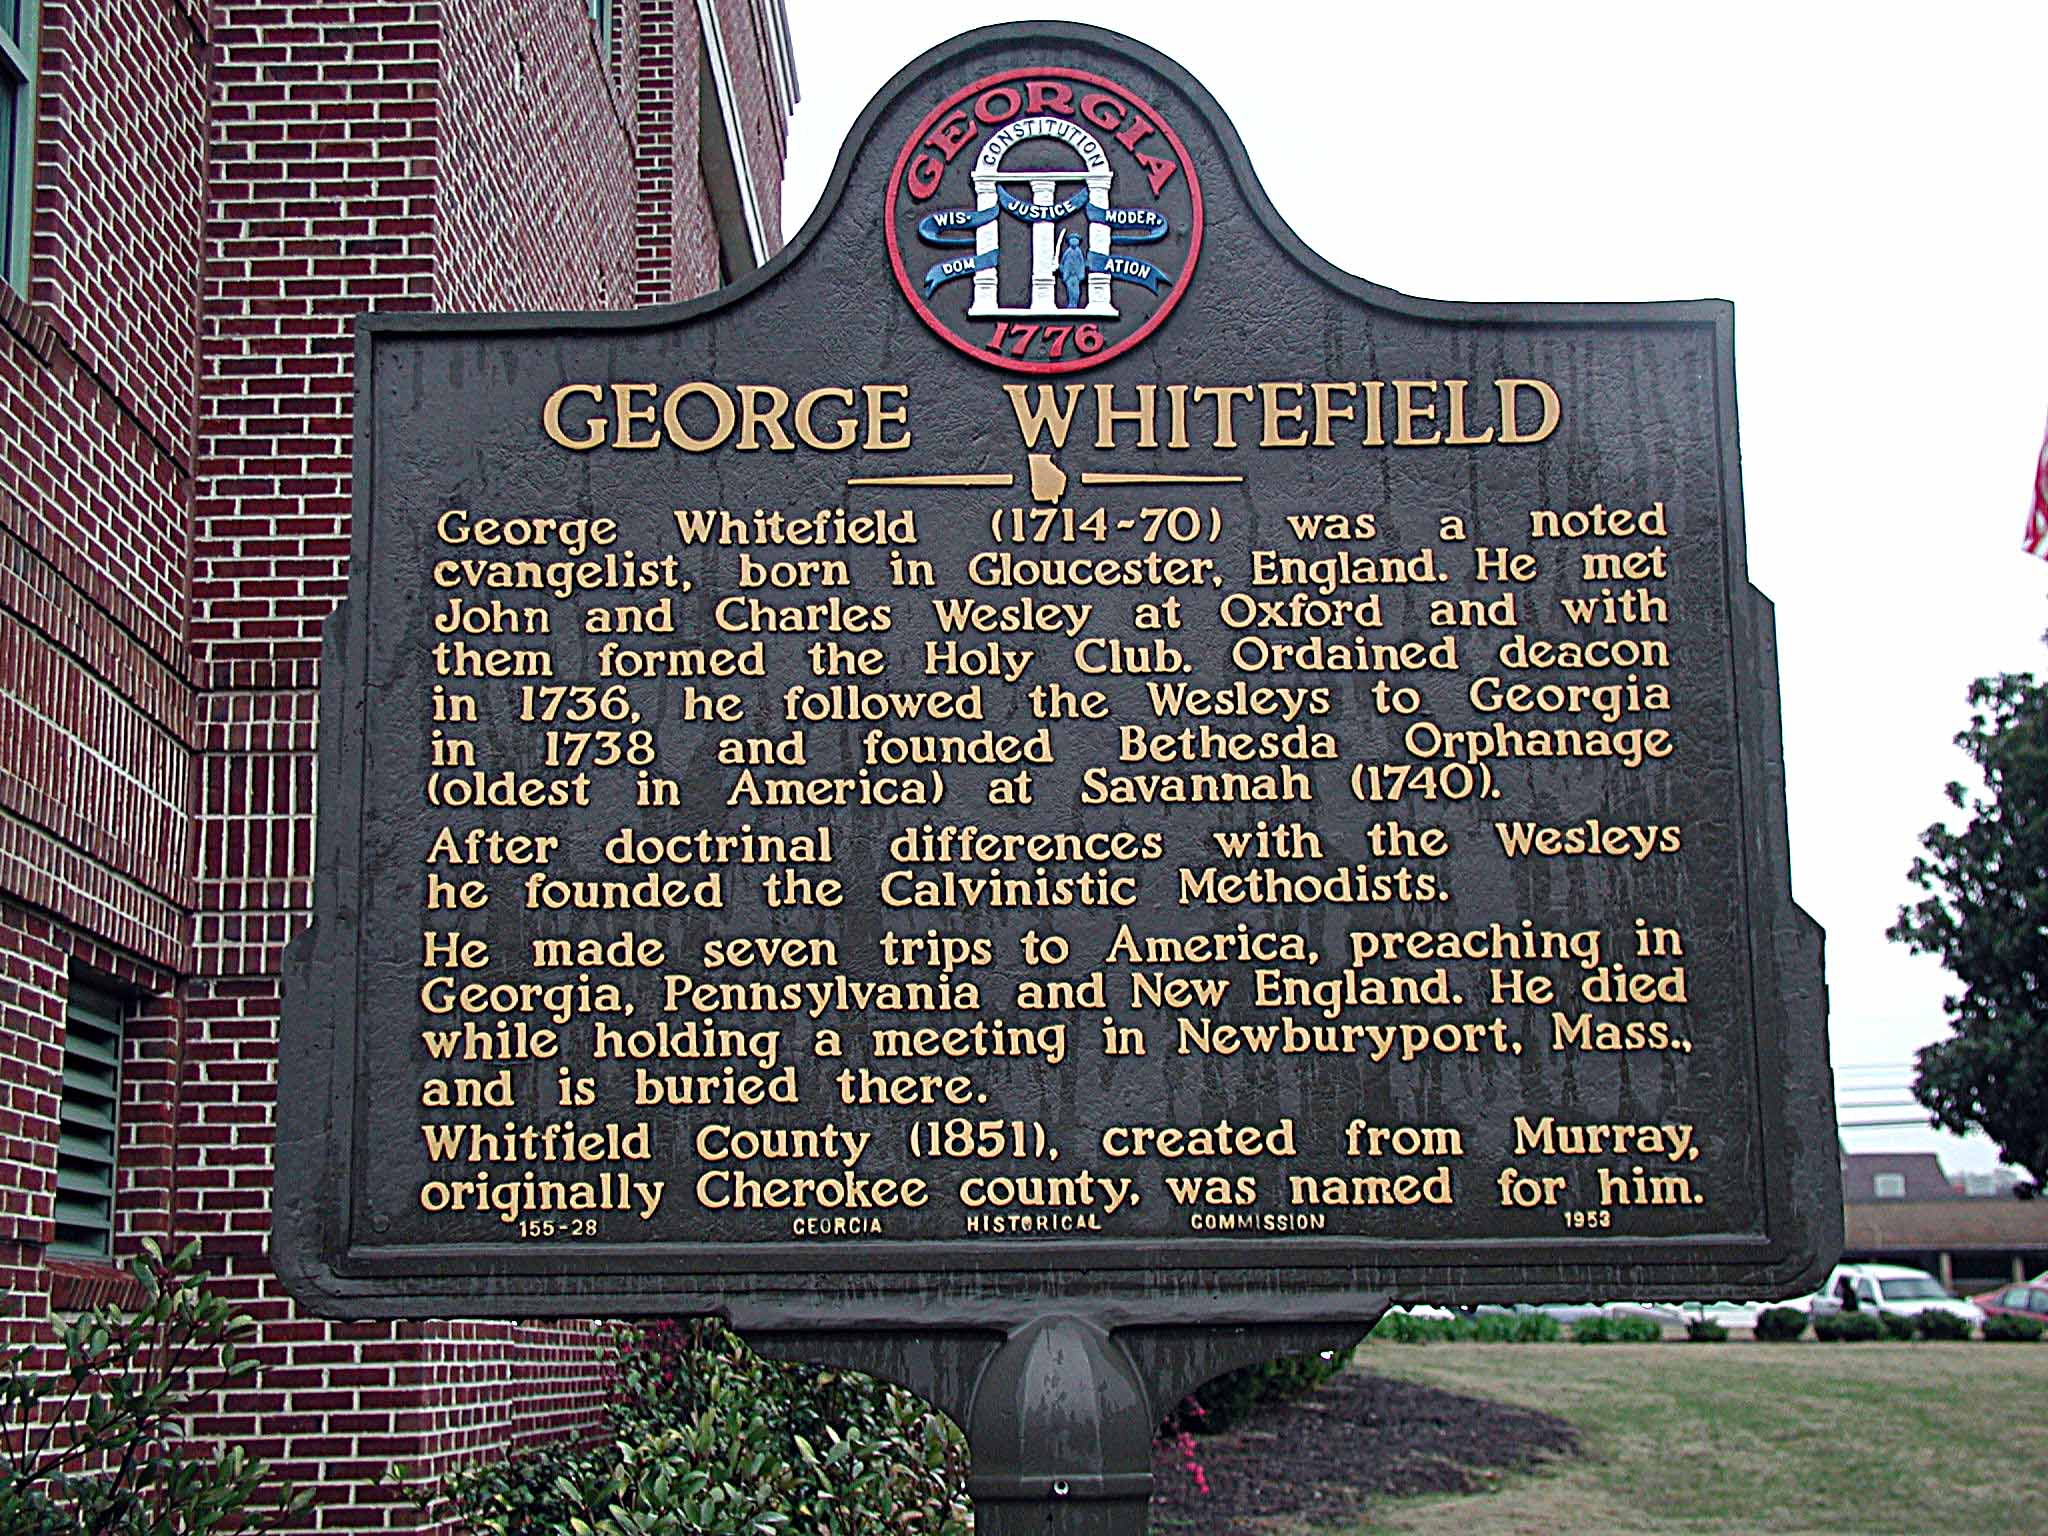 George Whitefield Commemorative Symposium